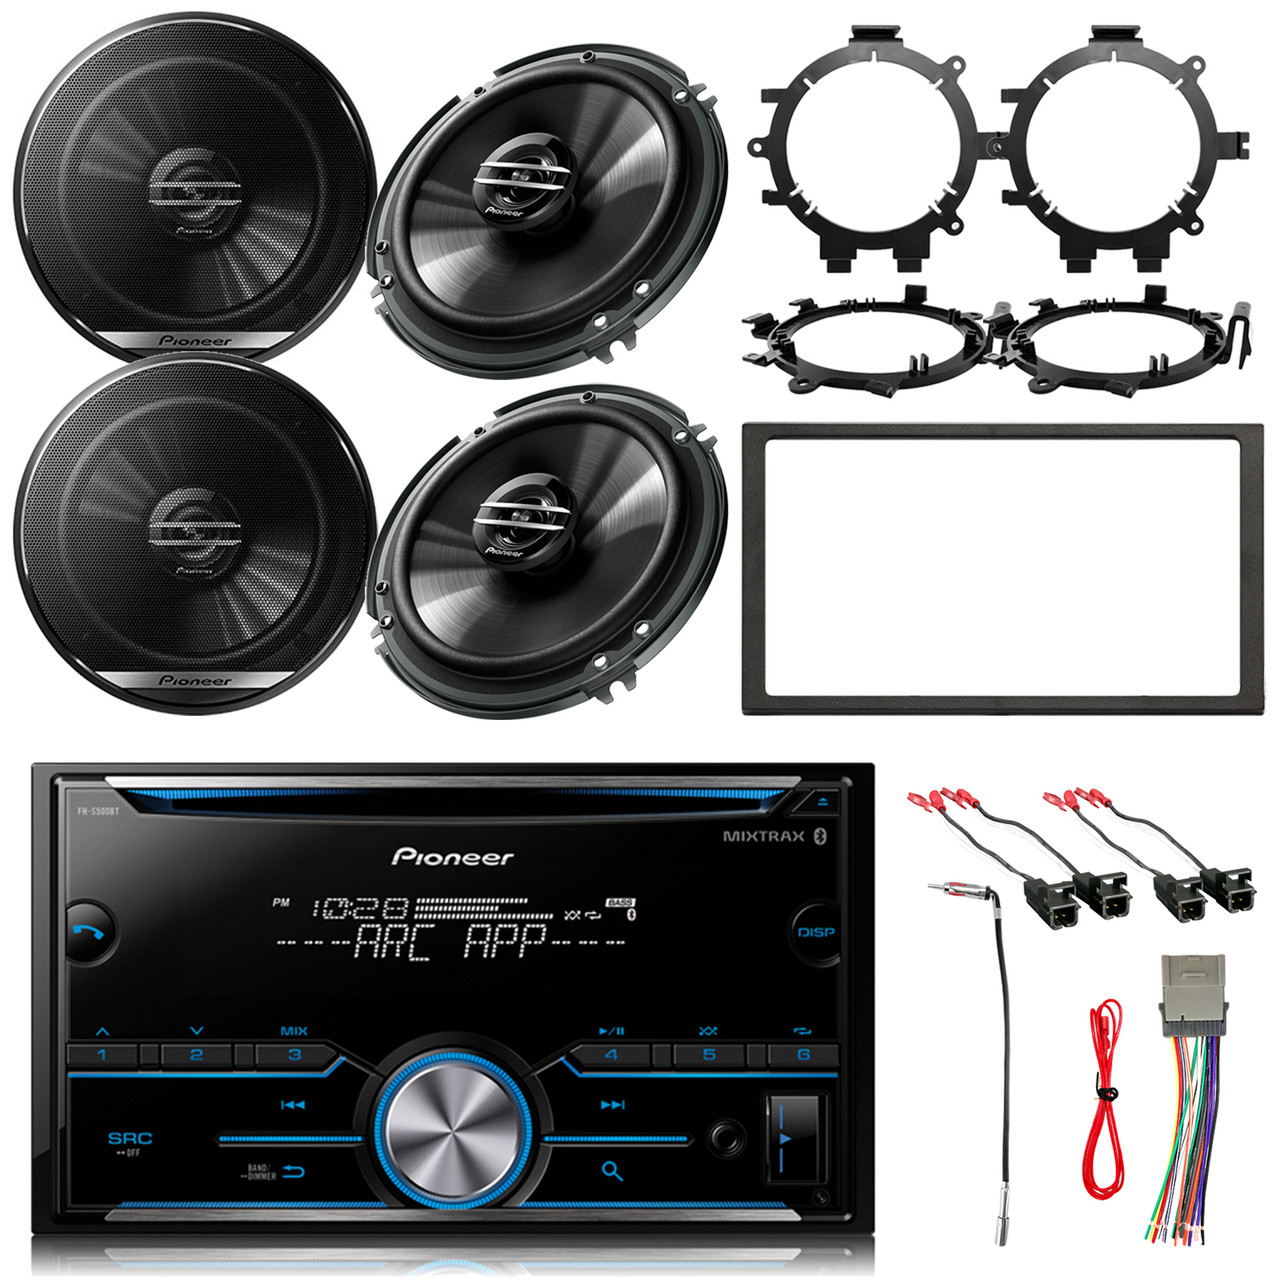 pioneer double din bluetooth mixtrax cd receiver 4x 6 5 speakers enrock dash kit stereo wiring harness antenna adapter 4x speaker wire harness  [ 1280 x 1280 Pixel ]